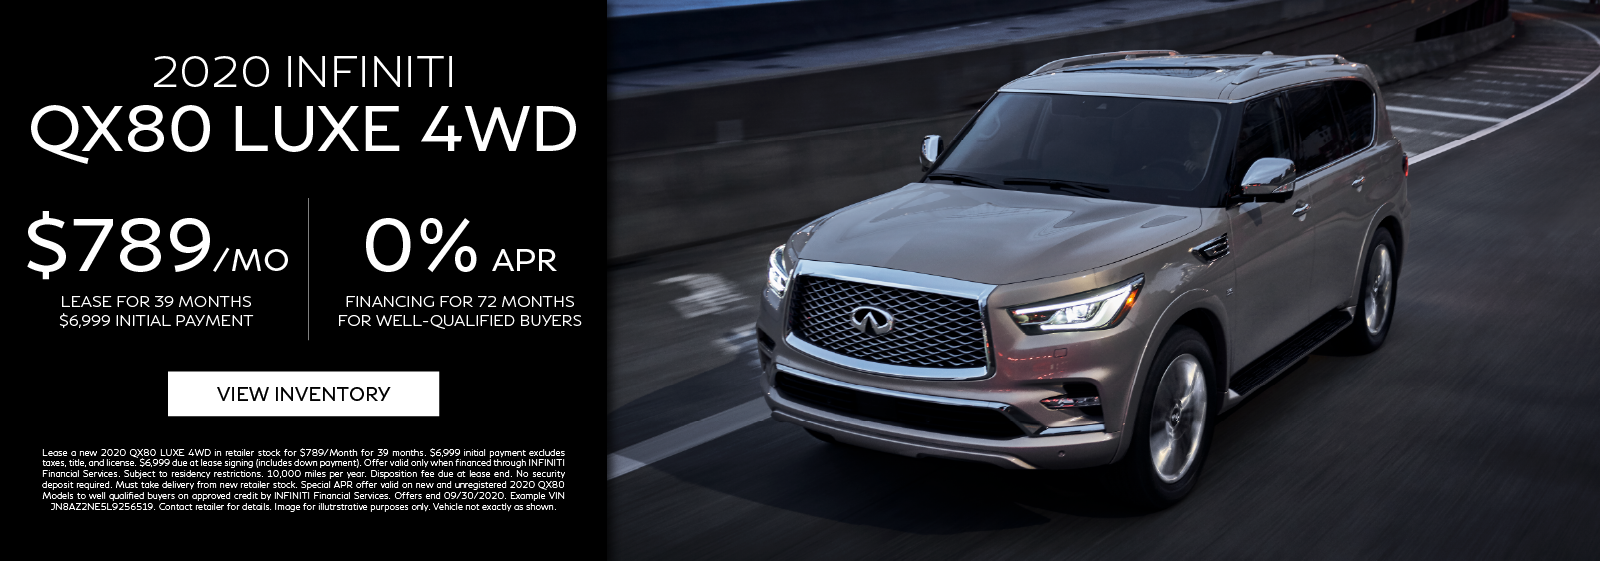 Lease a new 2020 QX80 LUXE AWD for $789 per month for 39 months. Click to view inventory.